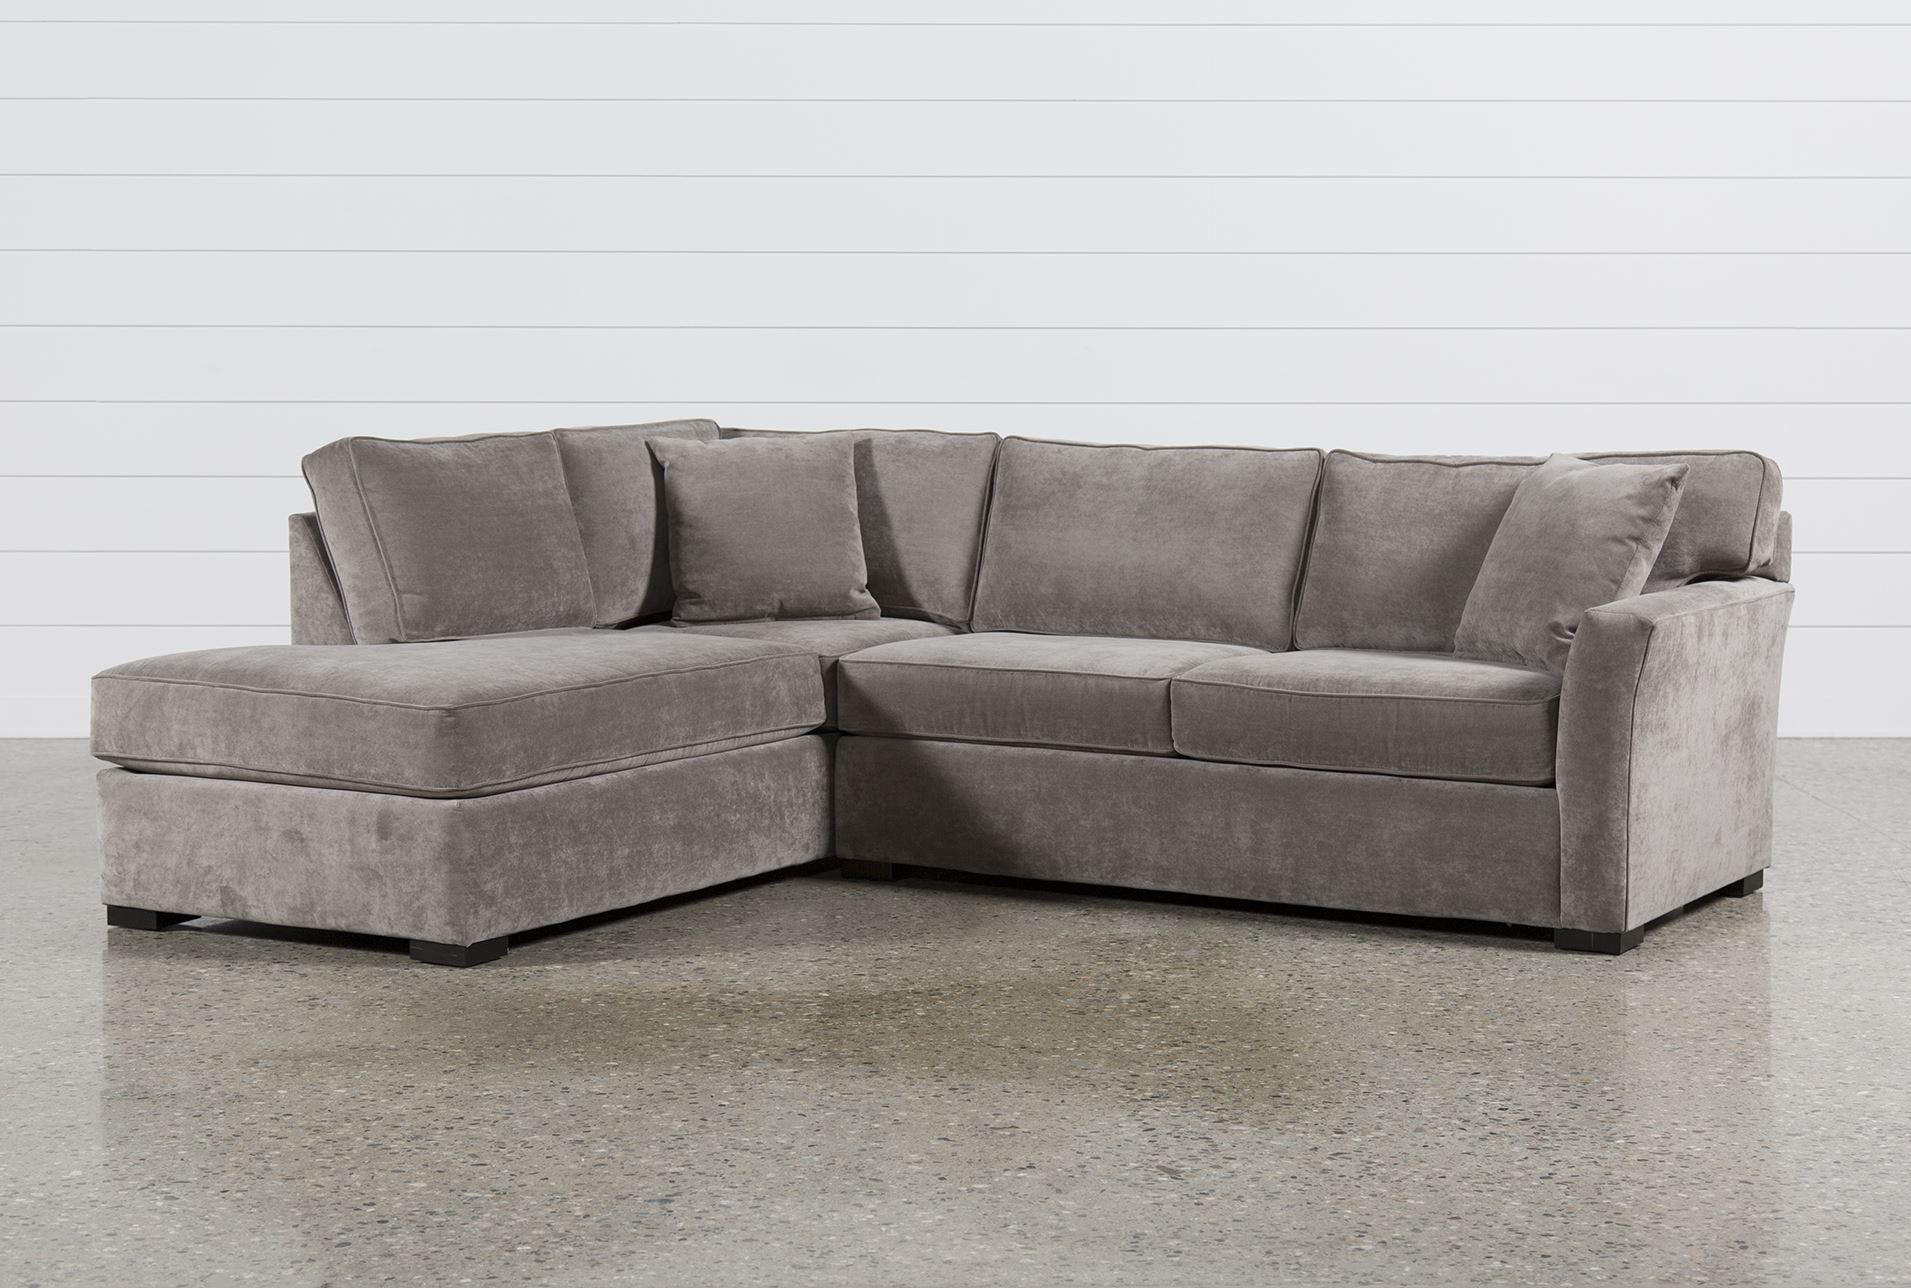 Aspen 2 Piece Sectional W/Laf Chaise